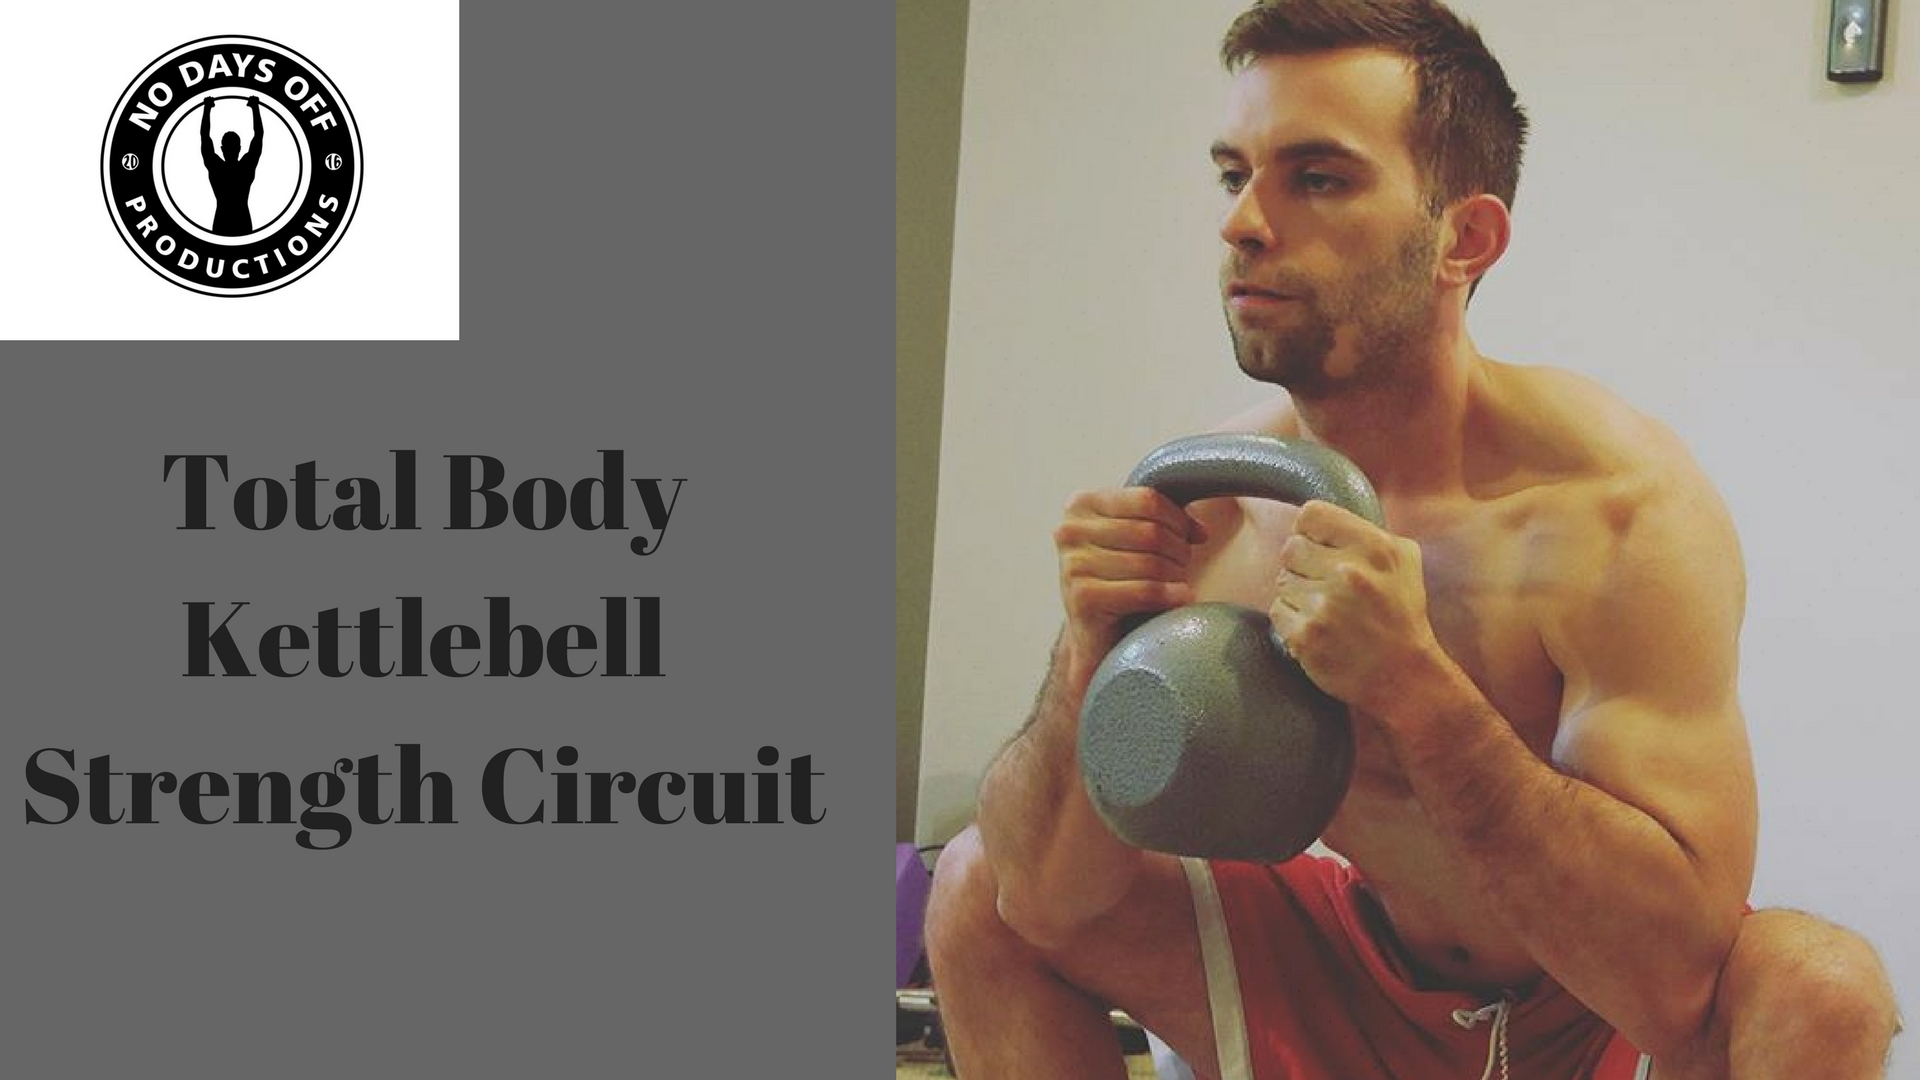 Total body Kettlebell Strength Circuit